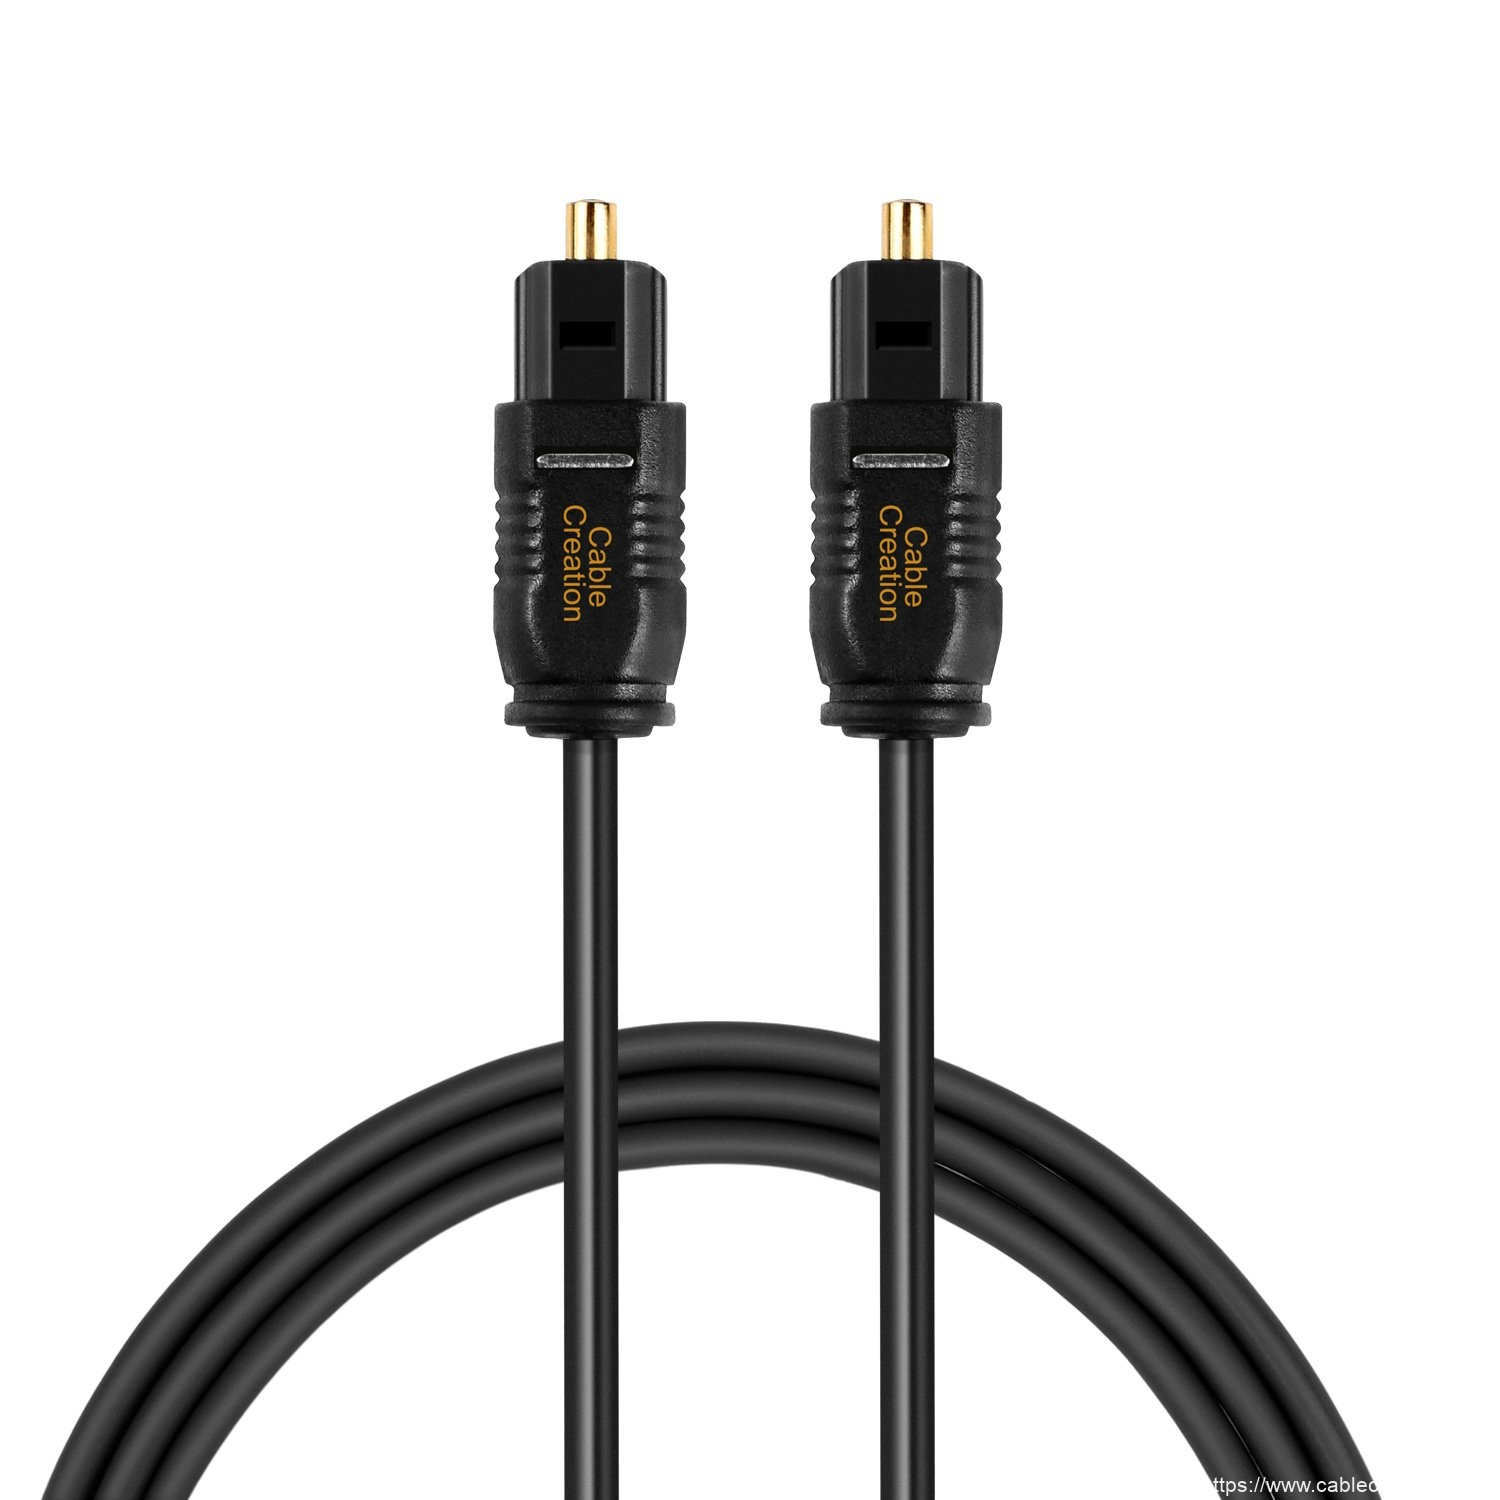 Super Purchasing for 2rca To 2rca Cable - Optical Digital Audio Cable 10Feet/3 Meters, #CF0027 – CableCreation